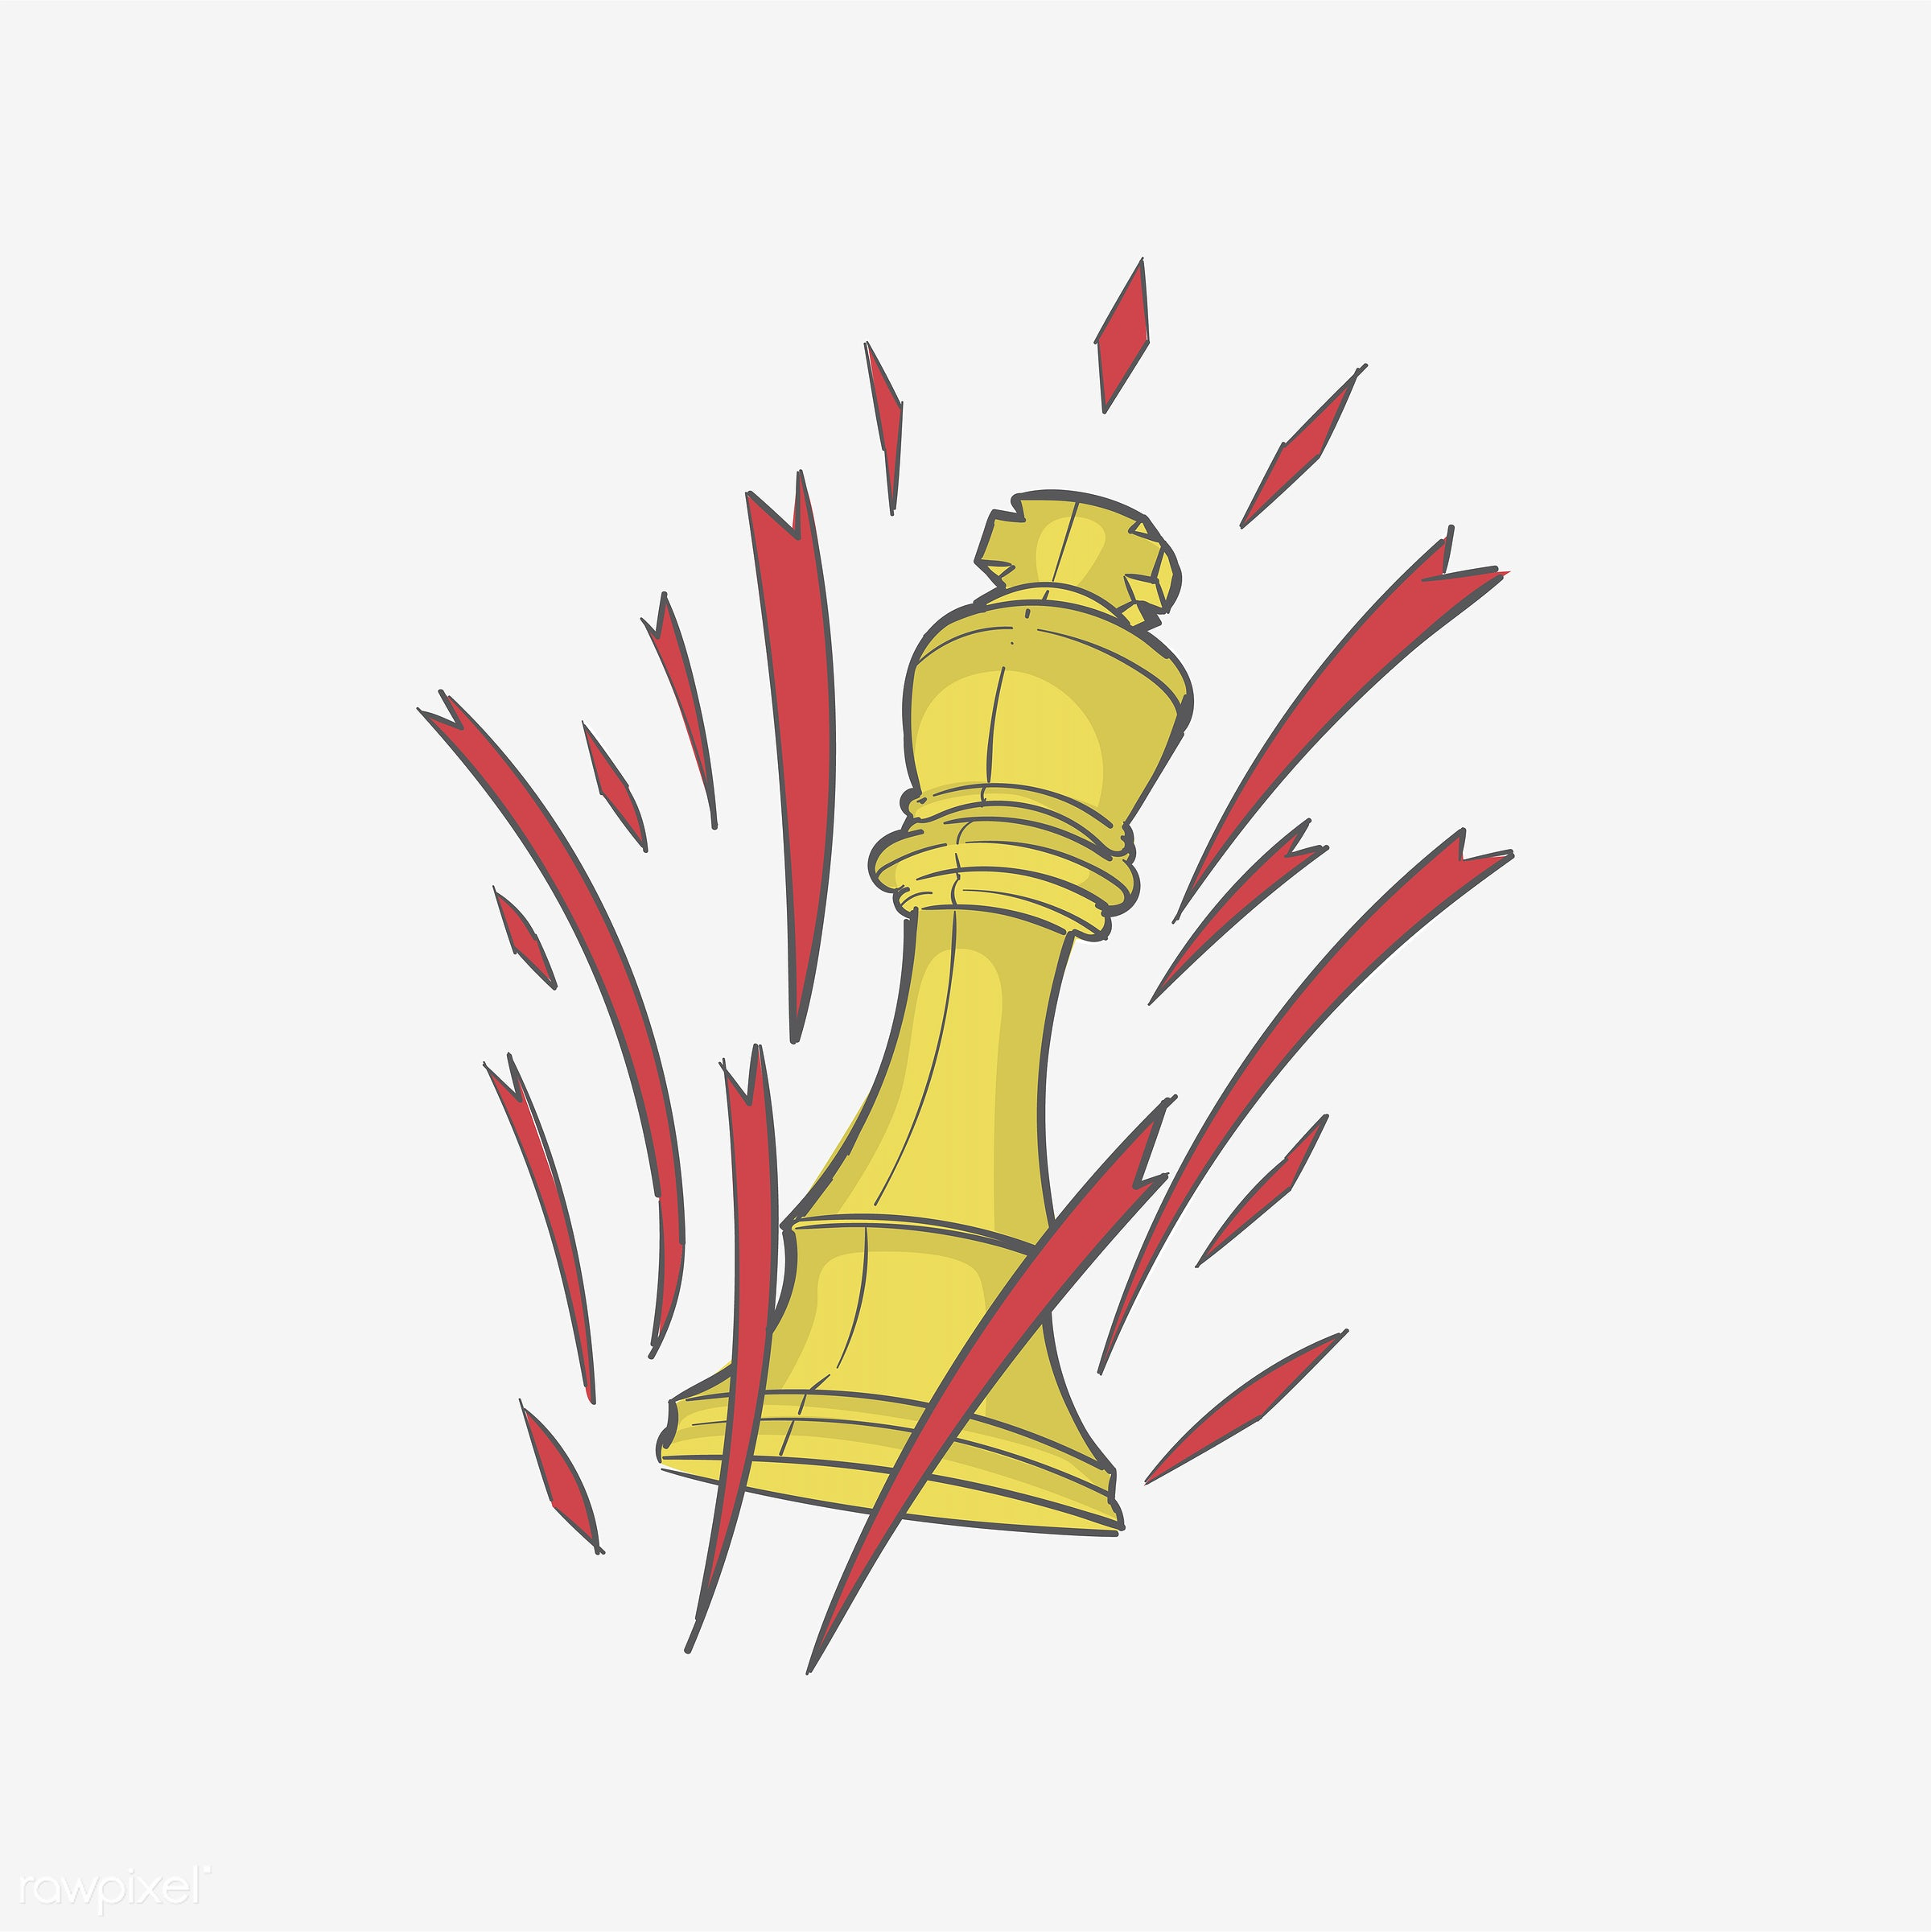 Hand drawing illustration of successful concept - achievement, aim, art, artwork, business, challenge, checkmate, chess,...